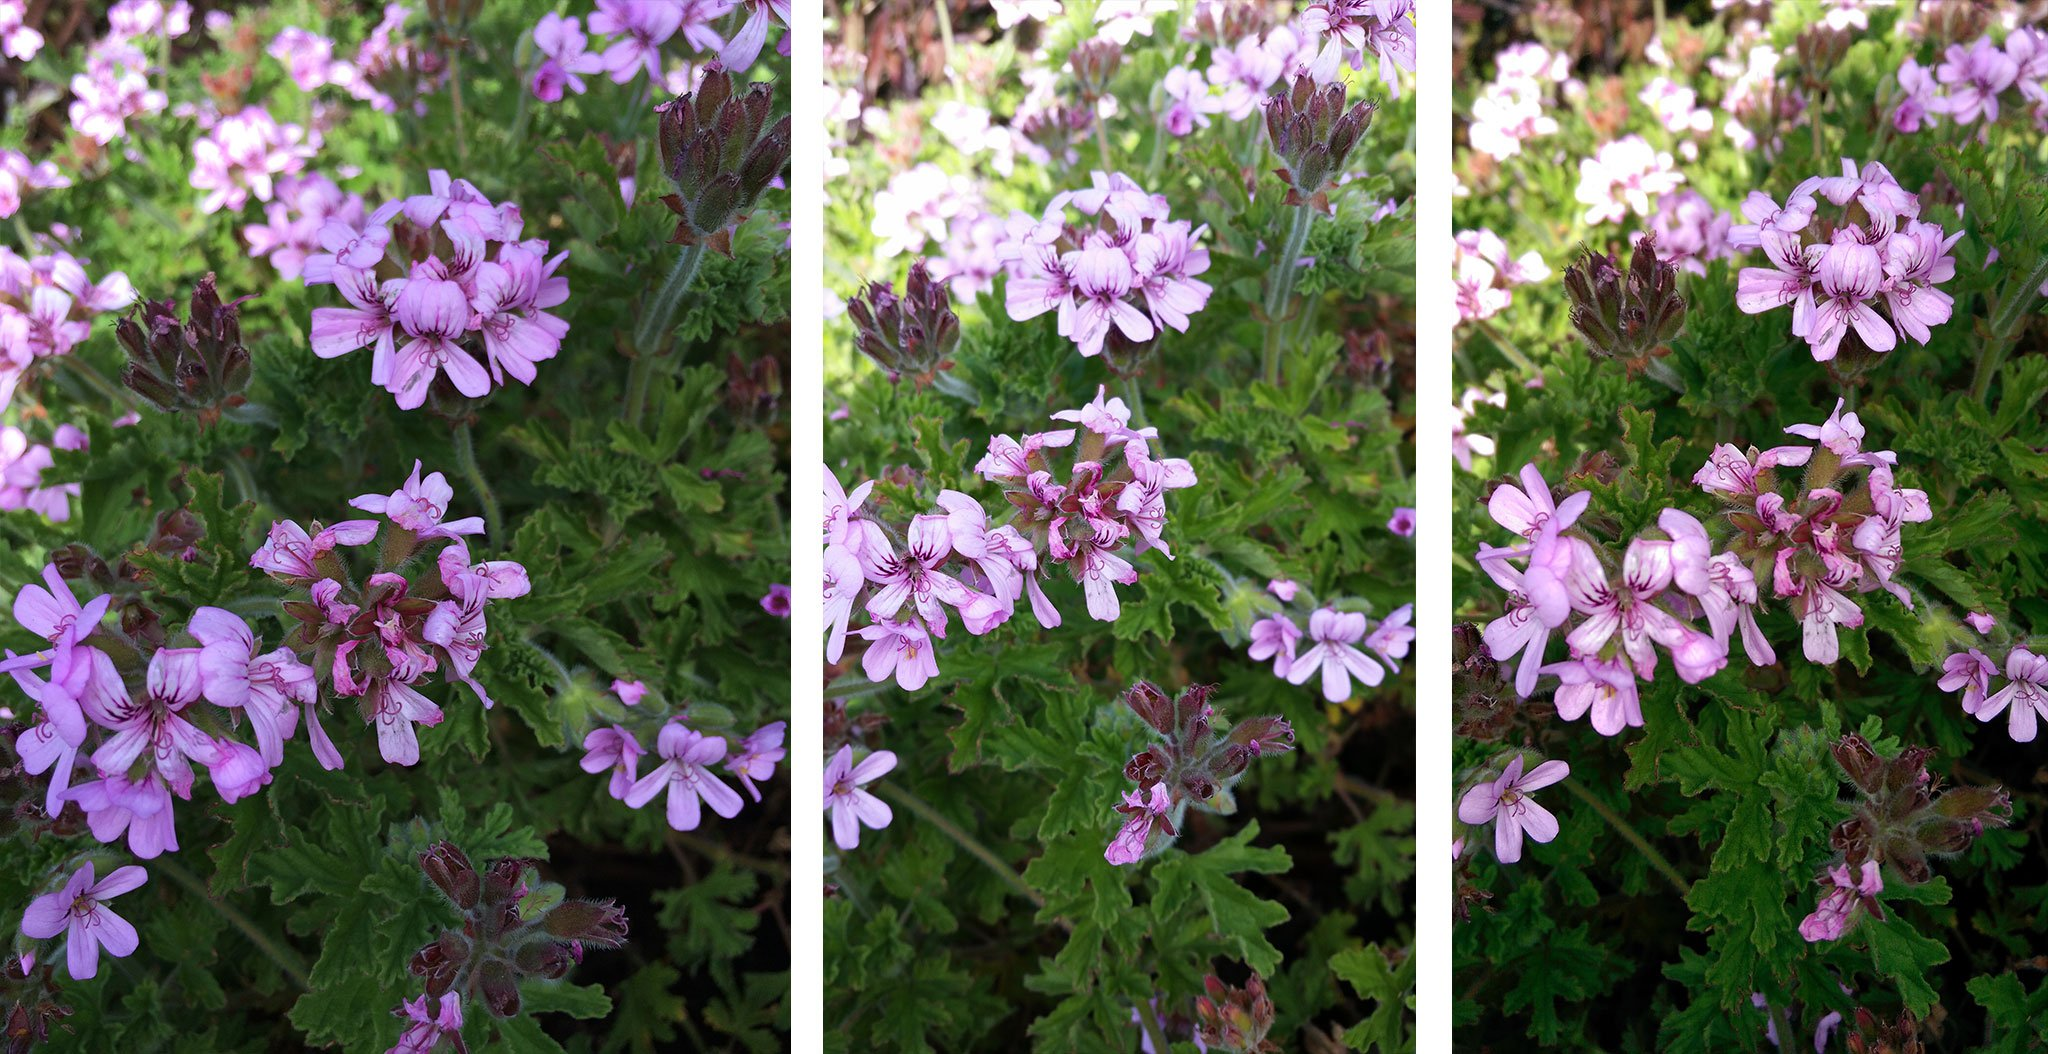 iPhone 5s vs. Galaxy S5 vs. HTC One M8: Macro and closeup photography